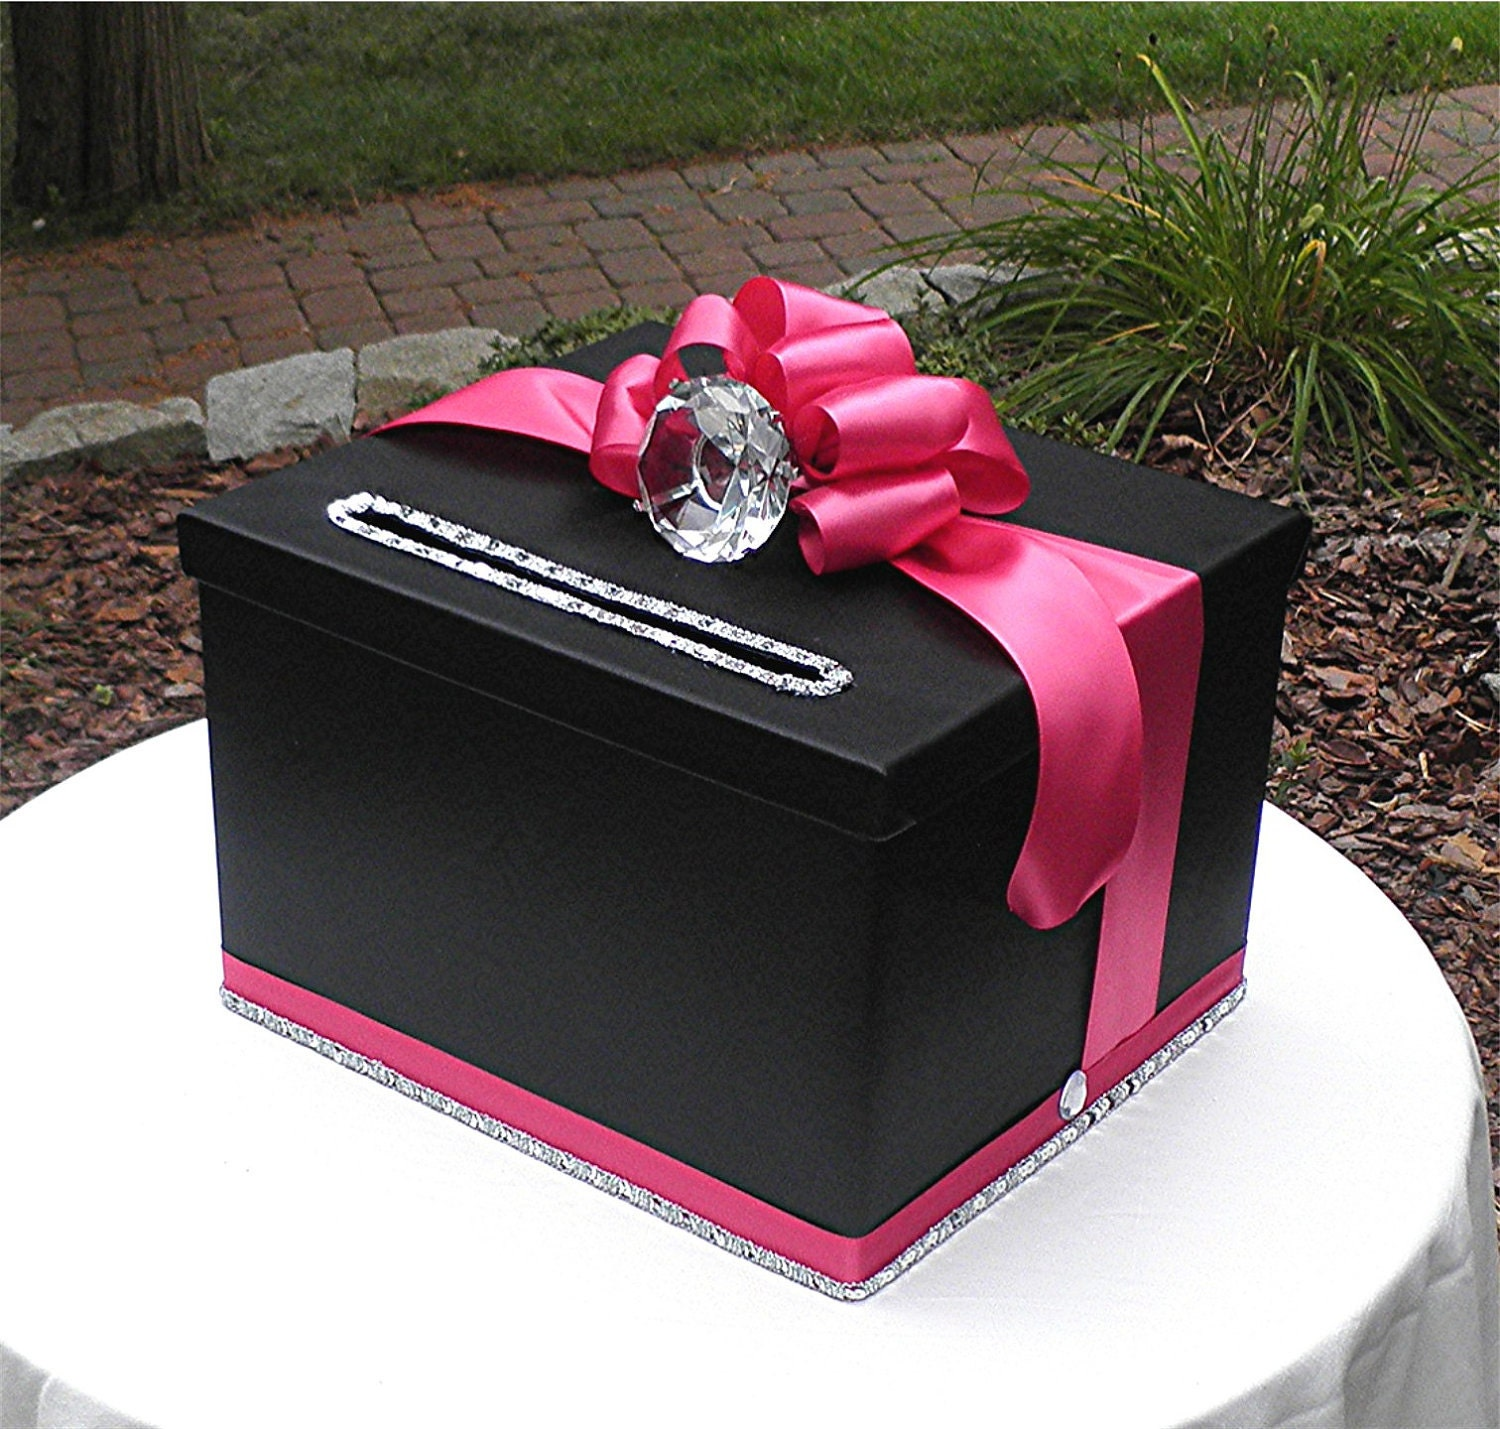 Black Wedding Gift Card Box : EtsyYour place to buy and sell all things handmade, vintage, and ...